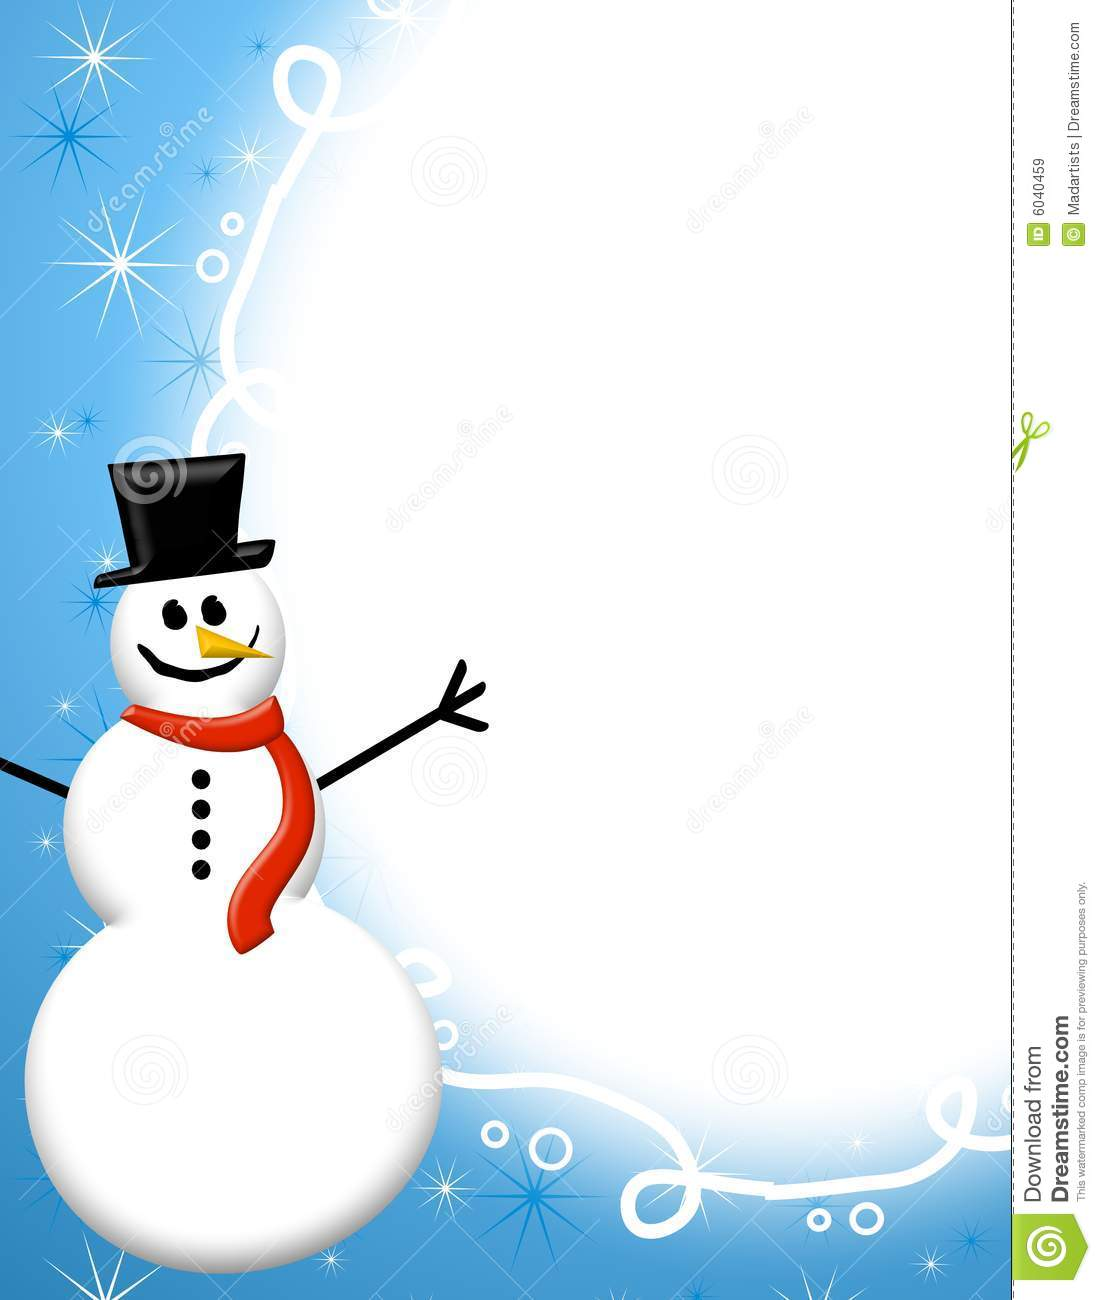 Snowman Thank You Clipart - Clipart Suggest